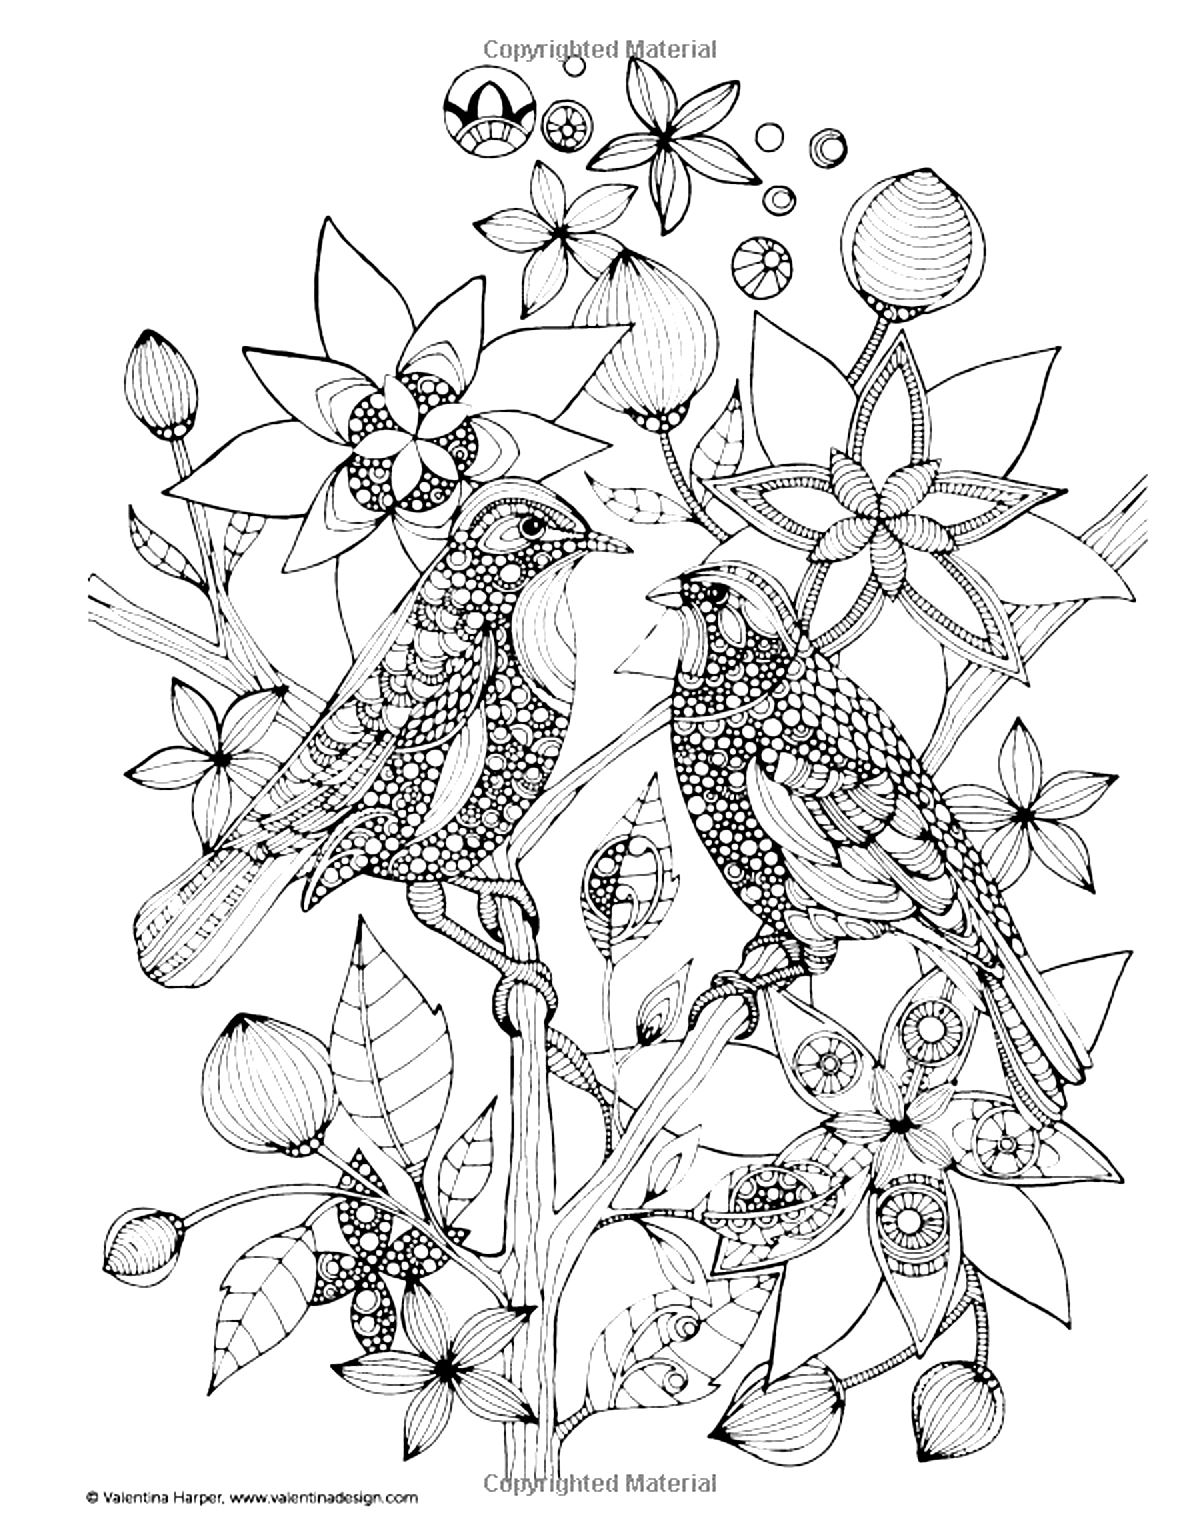 Drawing Of Two Wise Birds